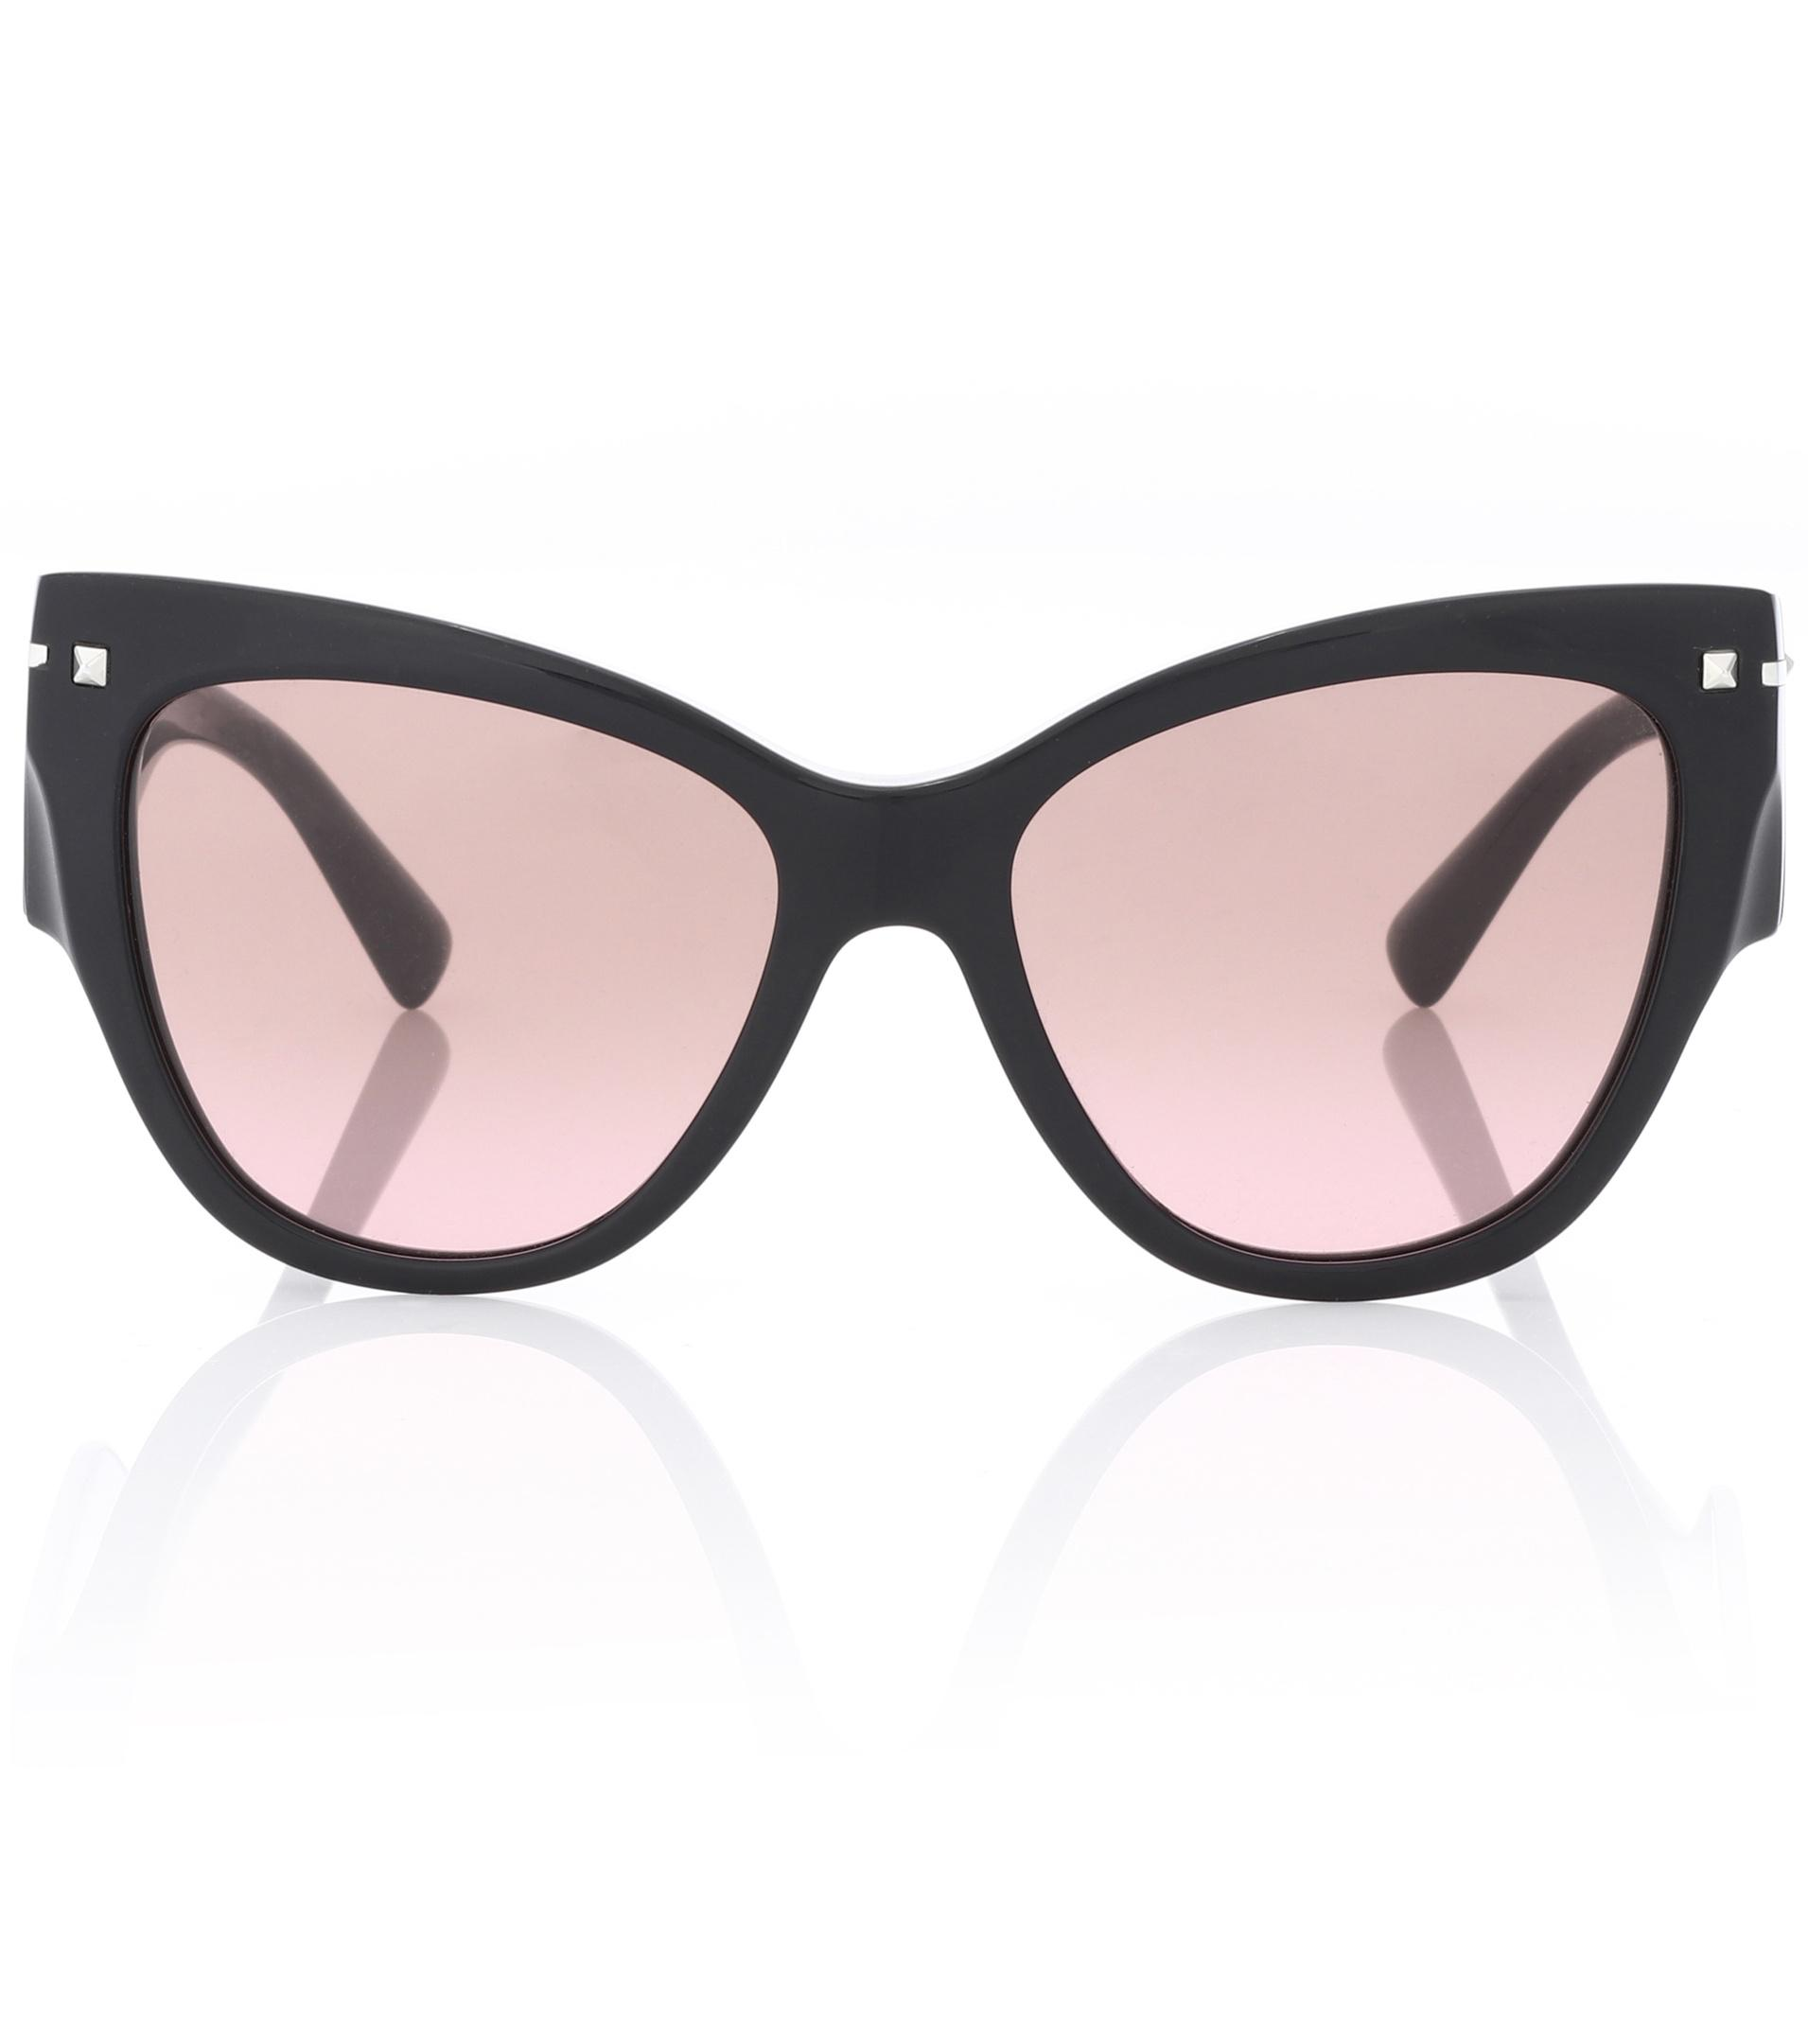 Valentino Garavani Cat-eye Acetate Sunglasses - Black Valentino bsDsJF